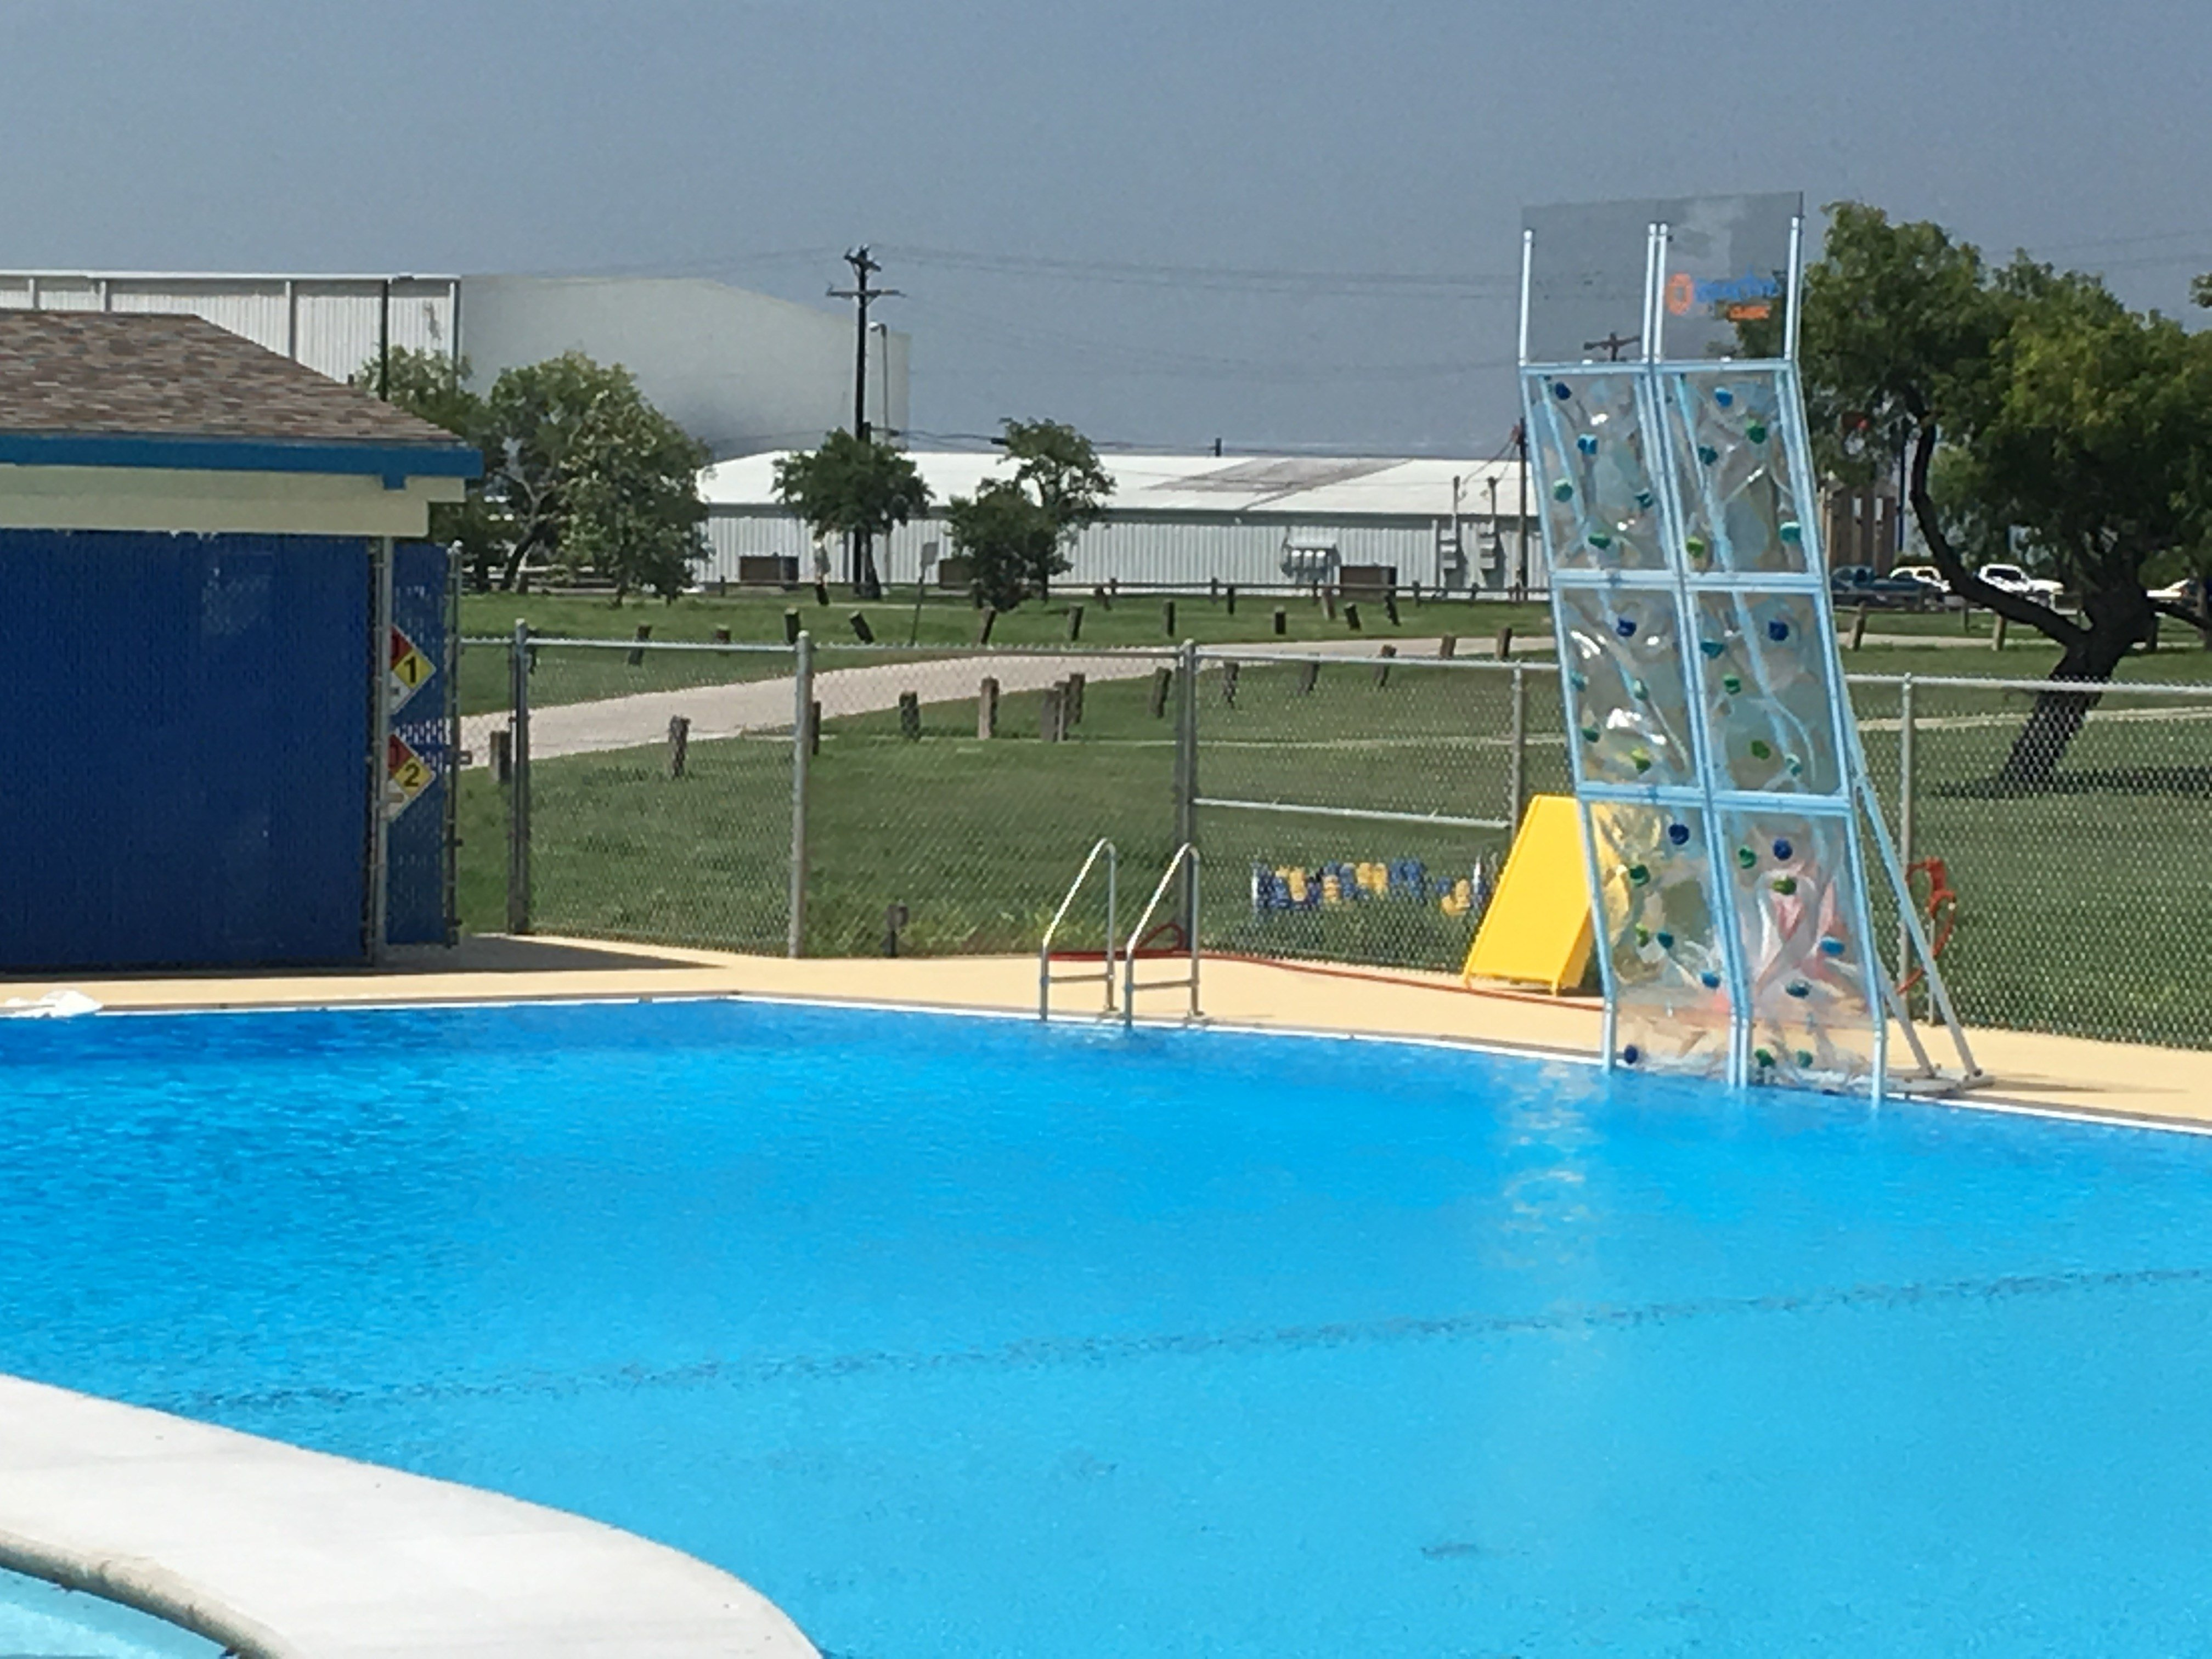 West Guth Park pool is opening back up after new features were added.